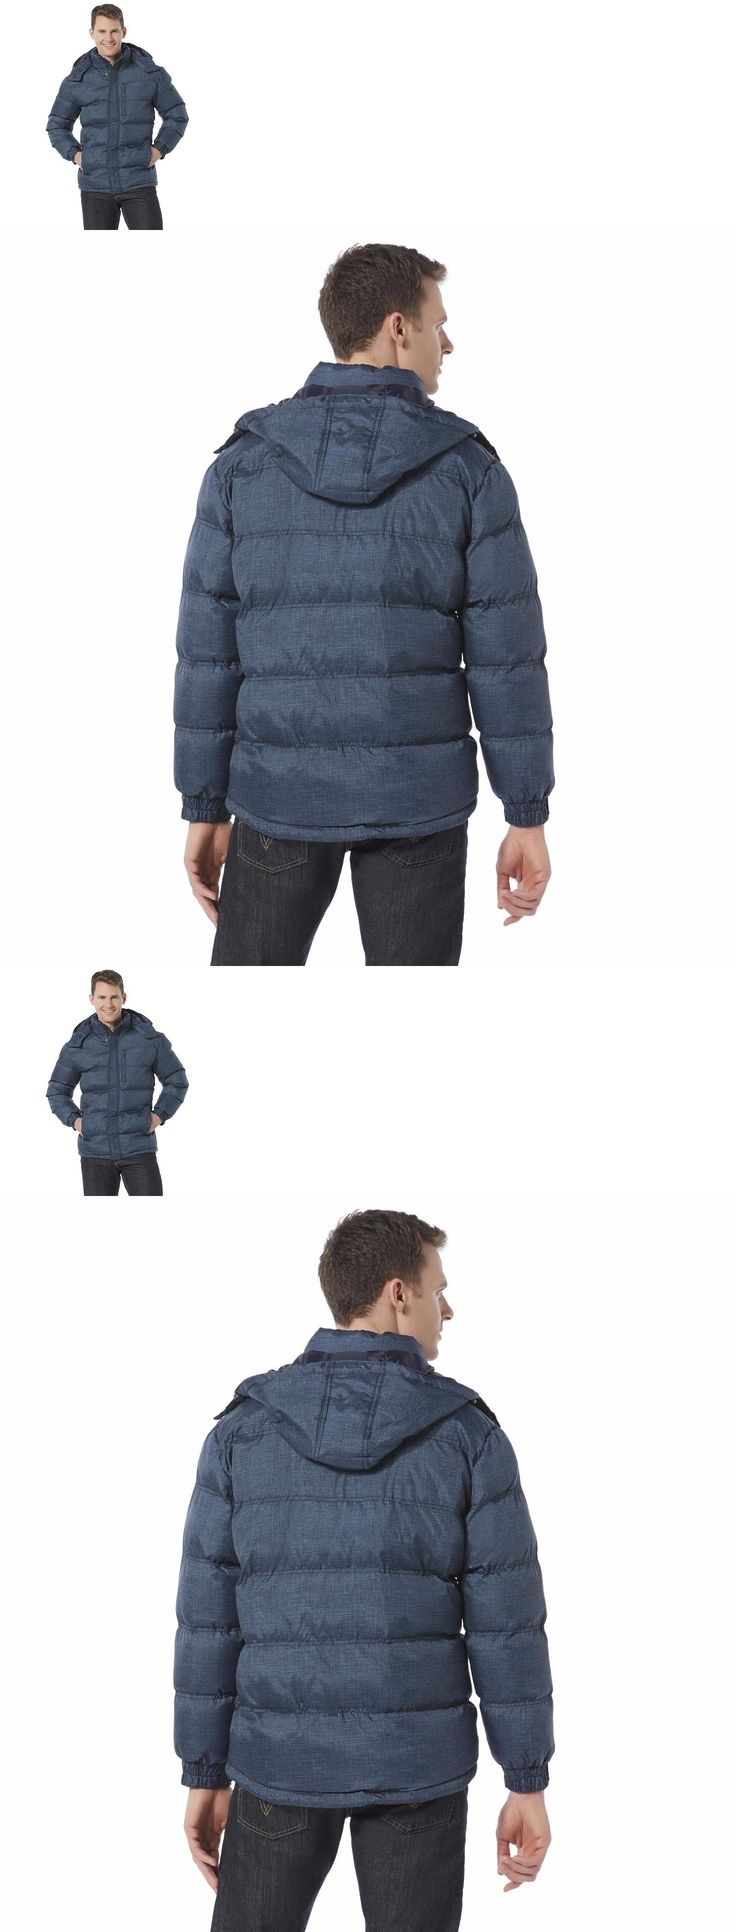 Men Coats And Jackets: Mens Puffer Coat Hooded Jacket Winter Snow Warm Bubble Large Xl Size Zip New BUY IT NOW ONLY: $49.95